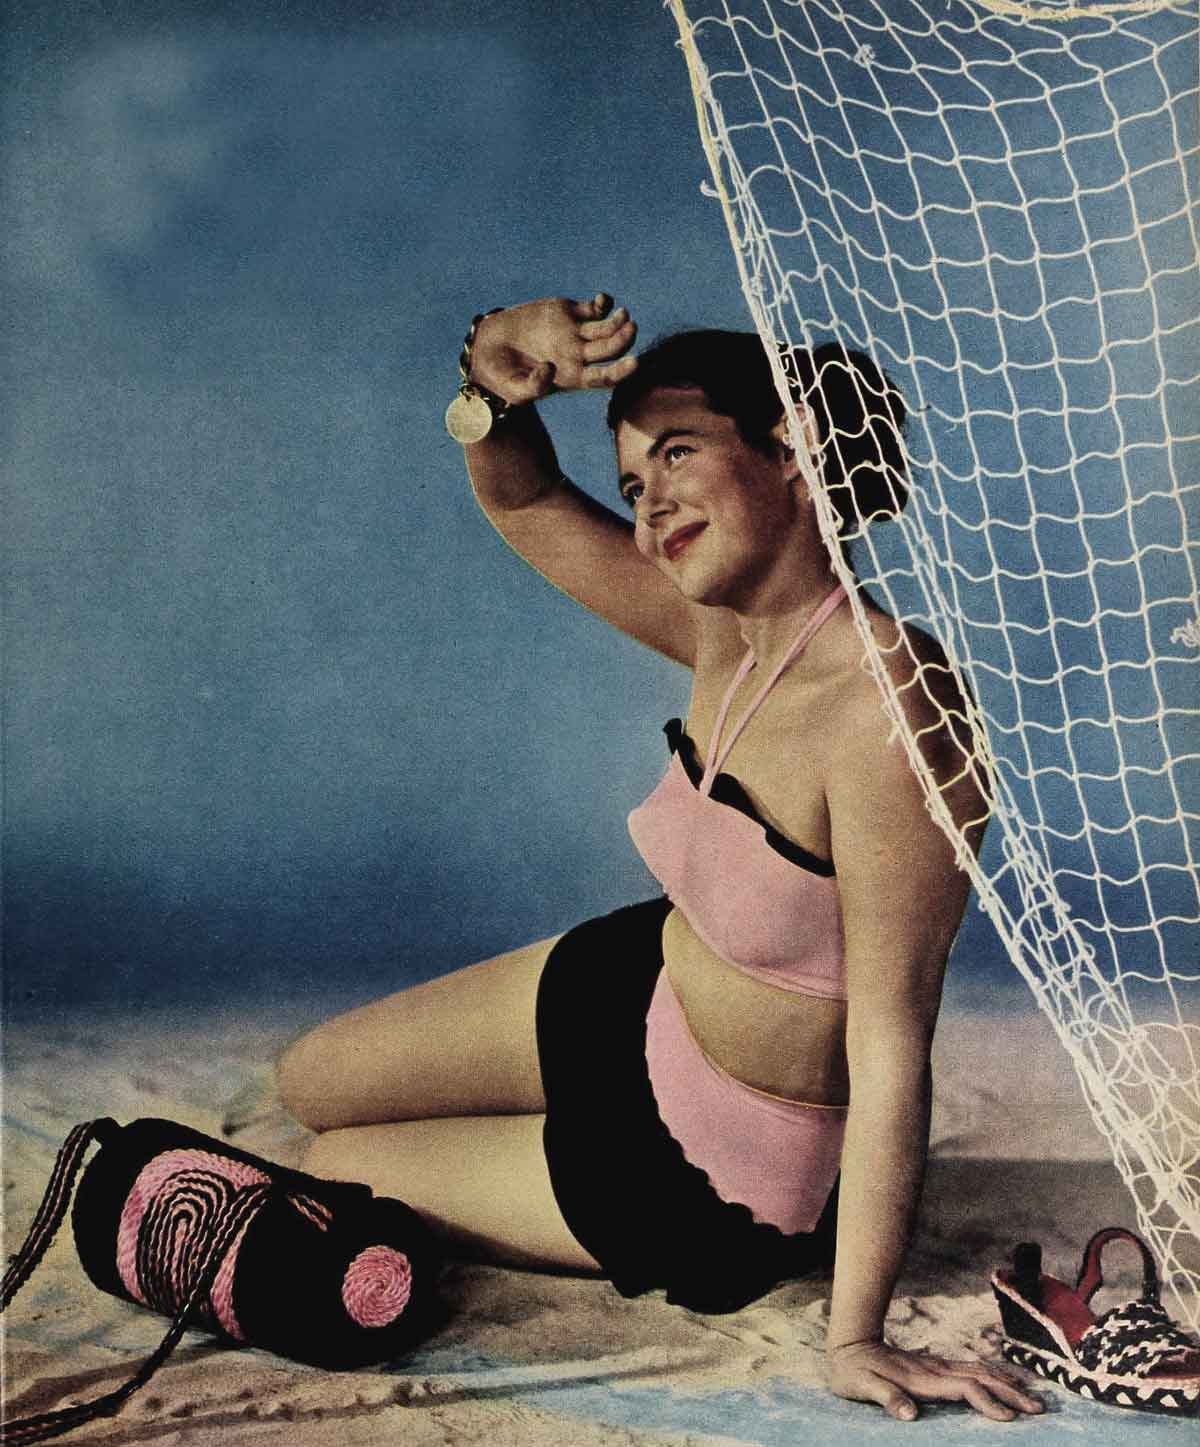 1940s-Fashion-Summer-Frock-and-Swimsuit-Styles-.jpg